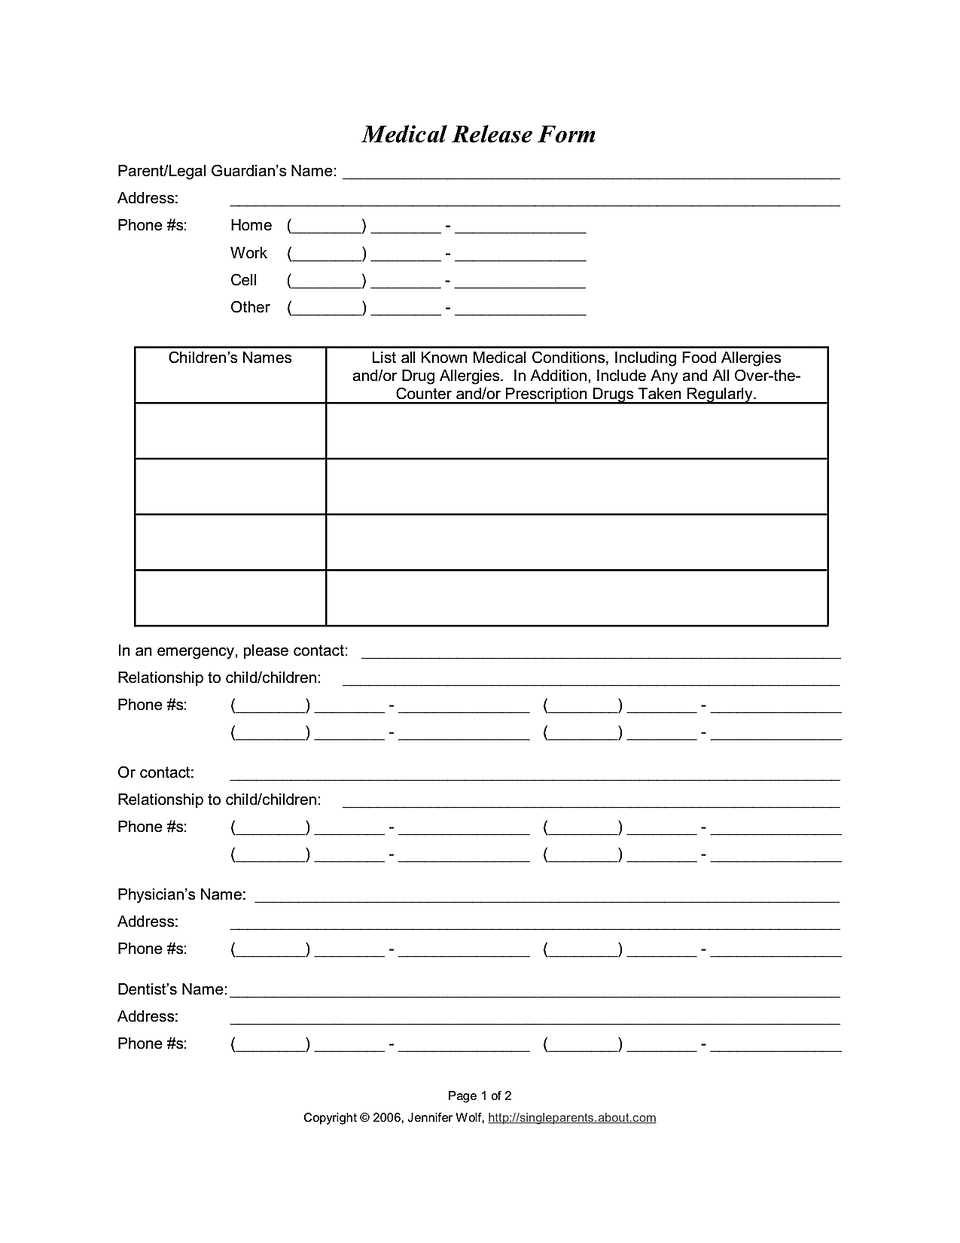 015 Medical Release Form Medicalreleaseform1 Template Ideas - Free Printable Medical Release Form